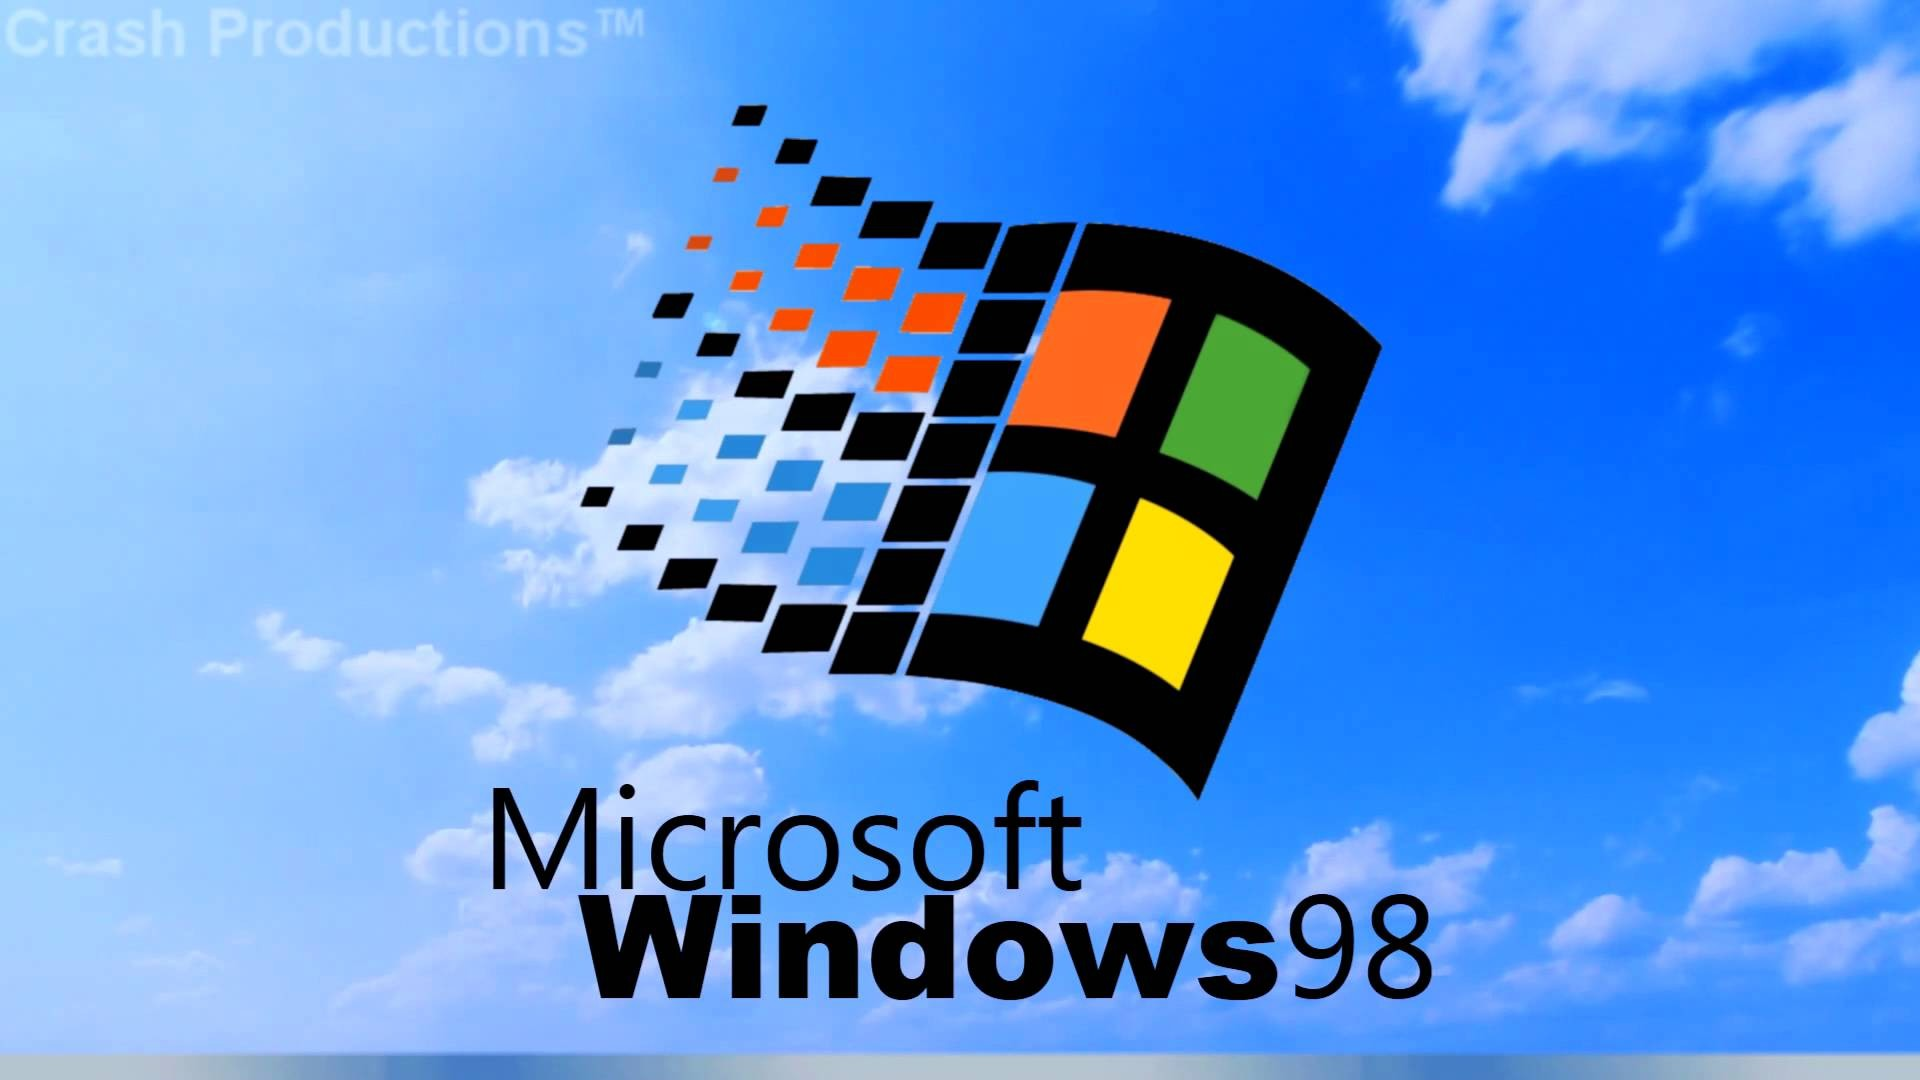 Windows 98 Wallpaper ·① Download Free Amazing HD